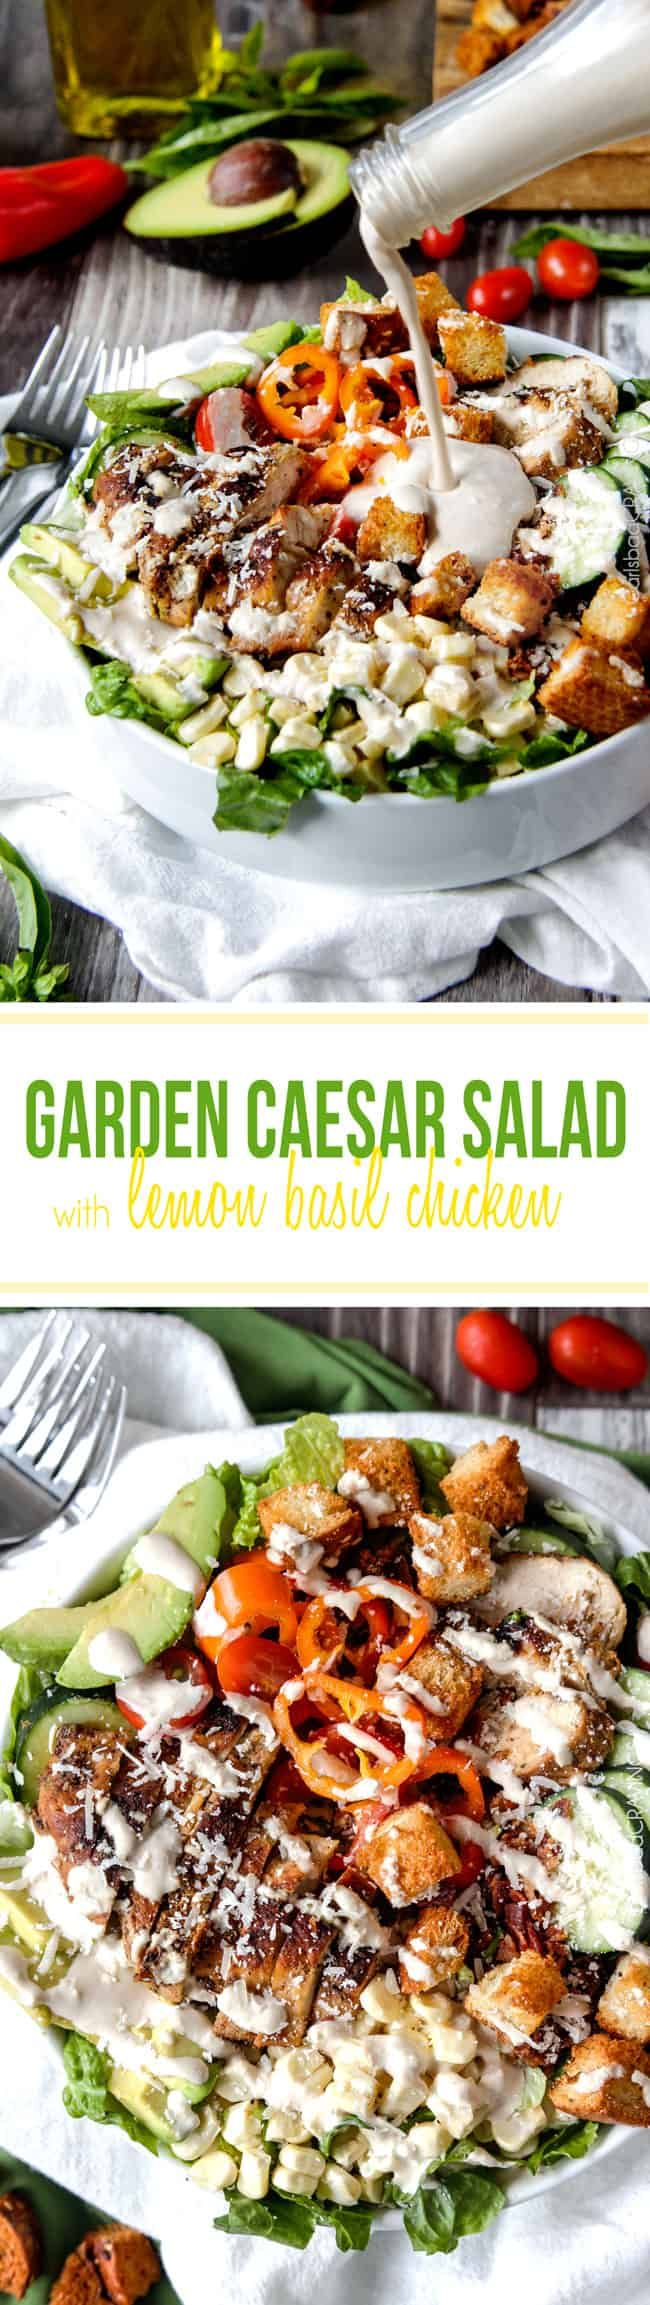 Garden Caesar Salad bursting with not only Parmesan cheese and homemade croutons but crispy bacon, fresh corn, avocados, tomatoes, cucumbers etc. and the most tender, juicy Lemon Basil Chicken all bathed in luscious homemade Caesar Dressing.